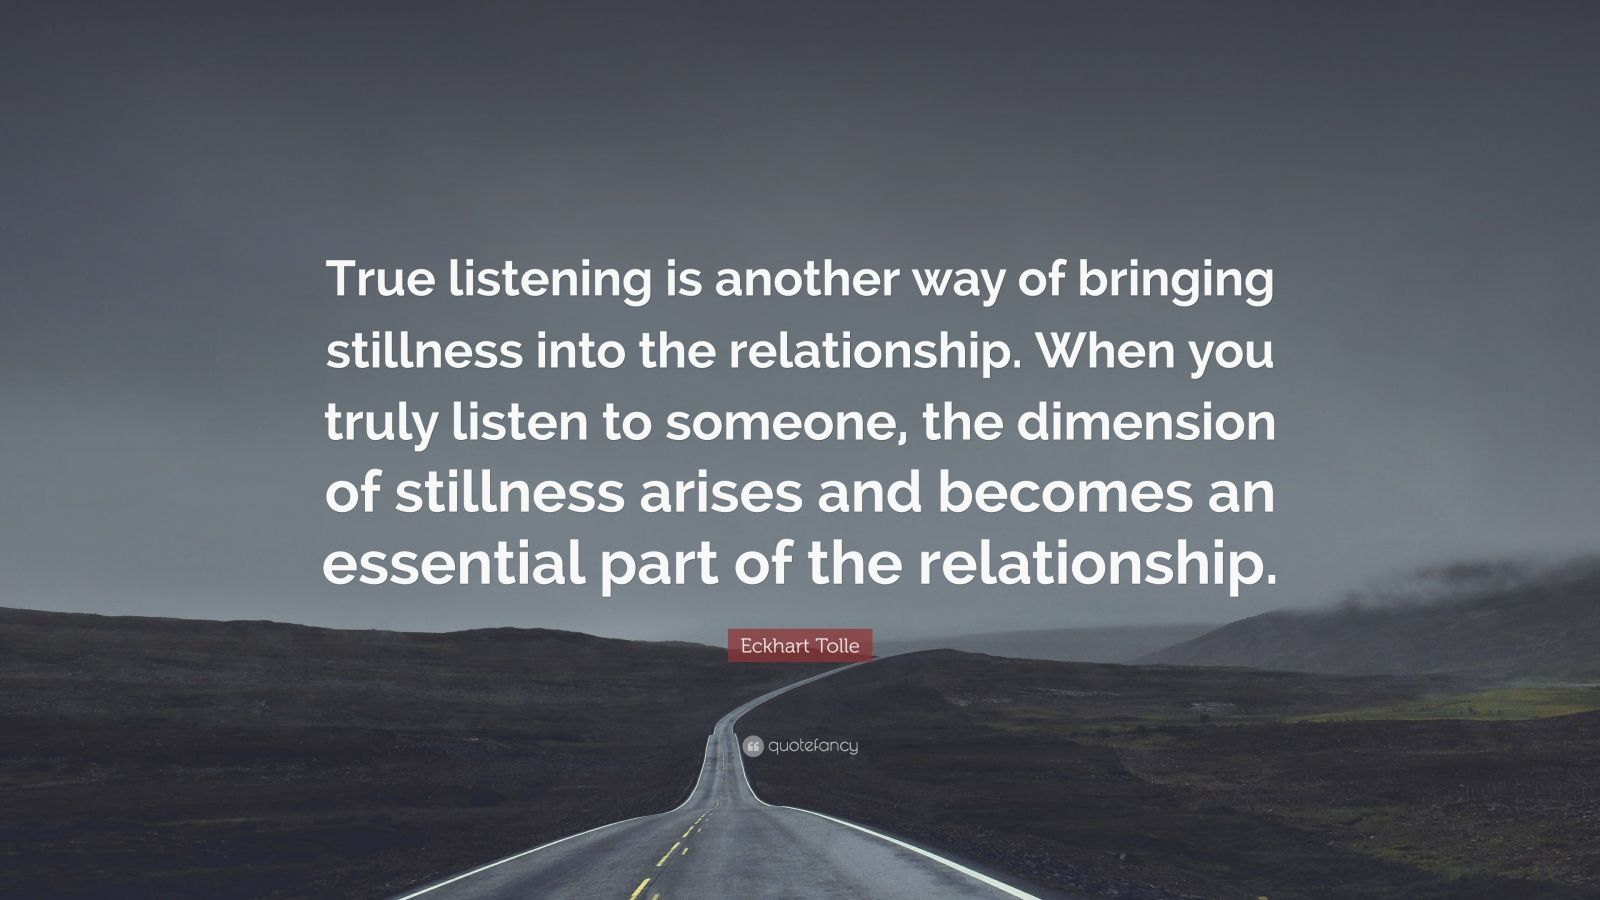 """Eckhart Tolle Quote: """"True listening is another way of bringing stillness into the relationship. When you truly listen to someone, the dimension of stillness arises and becomes an essential part of the relationship."""""""